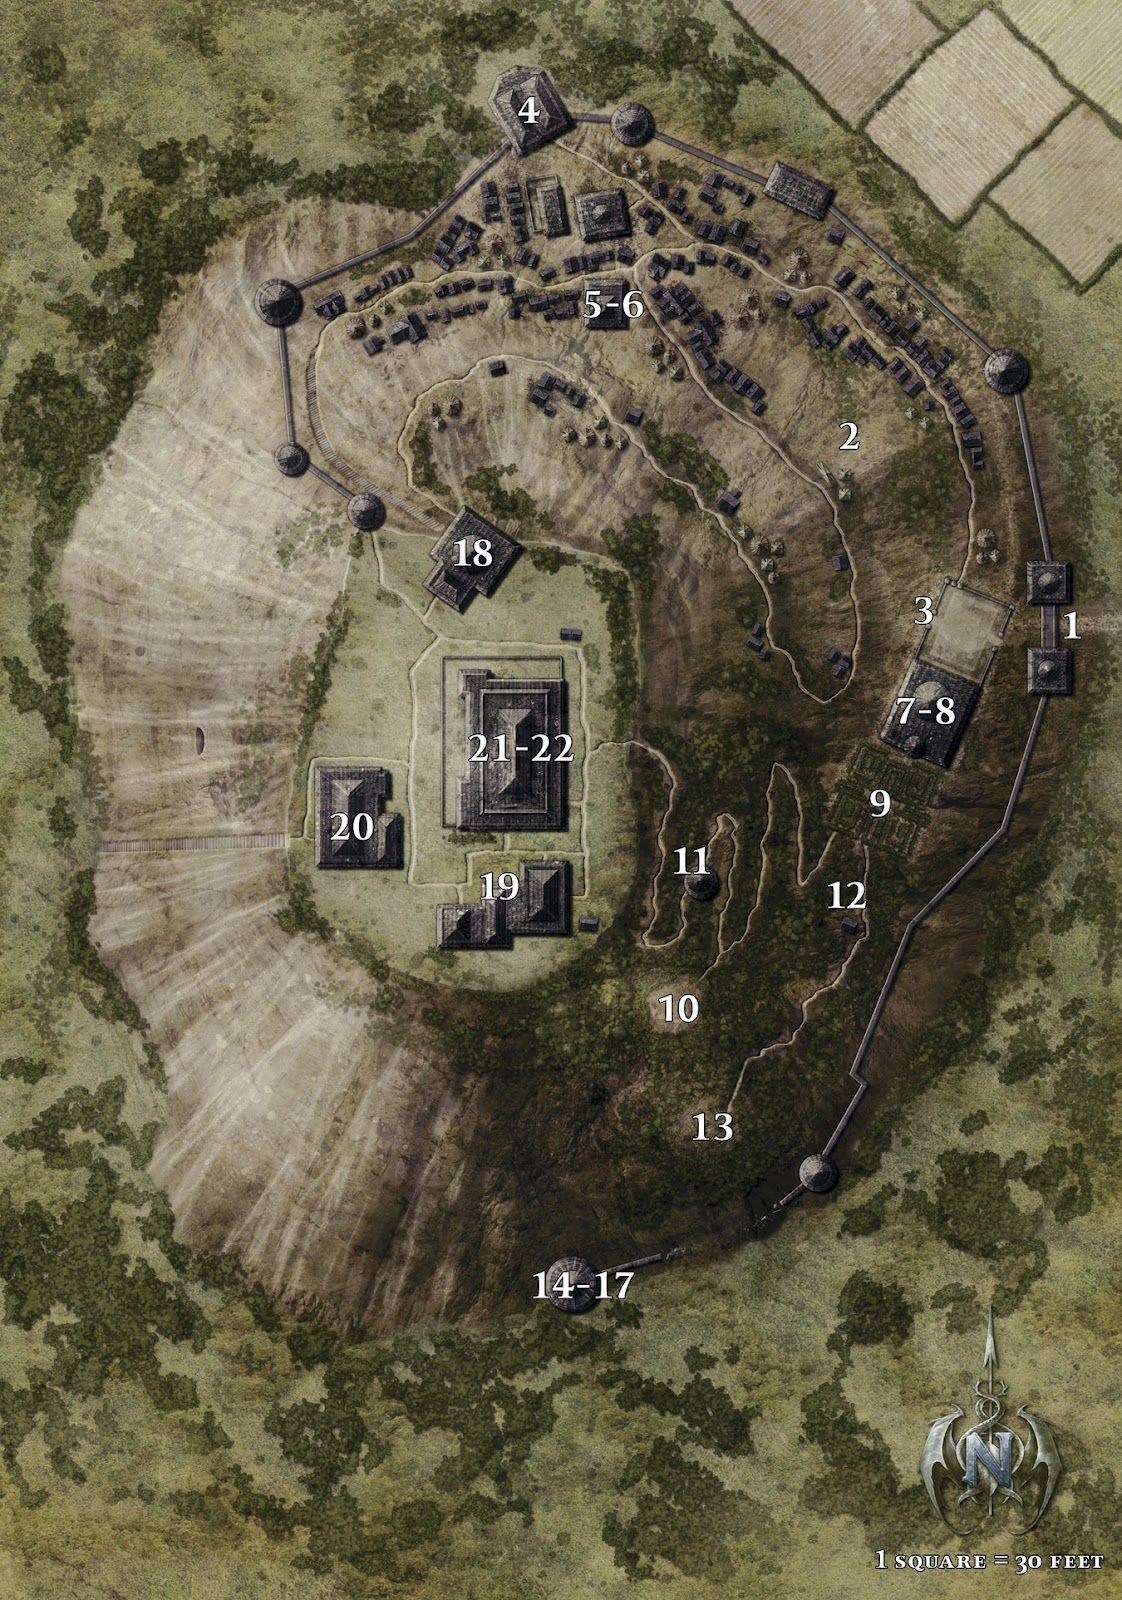 greenest keep map - Google Search | Cartography & RPG Maps ...